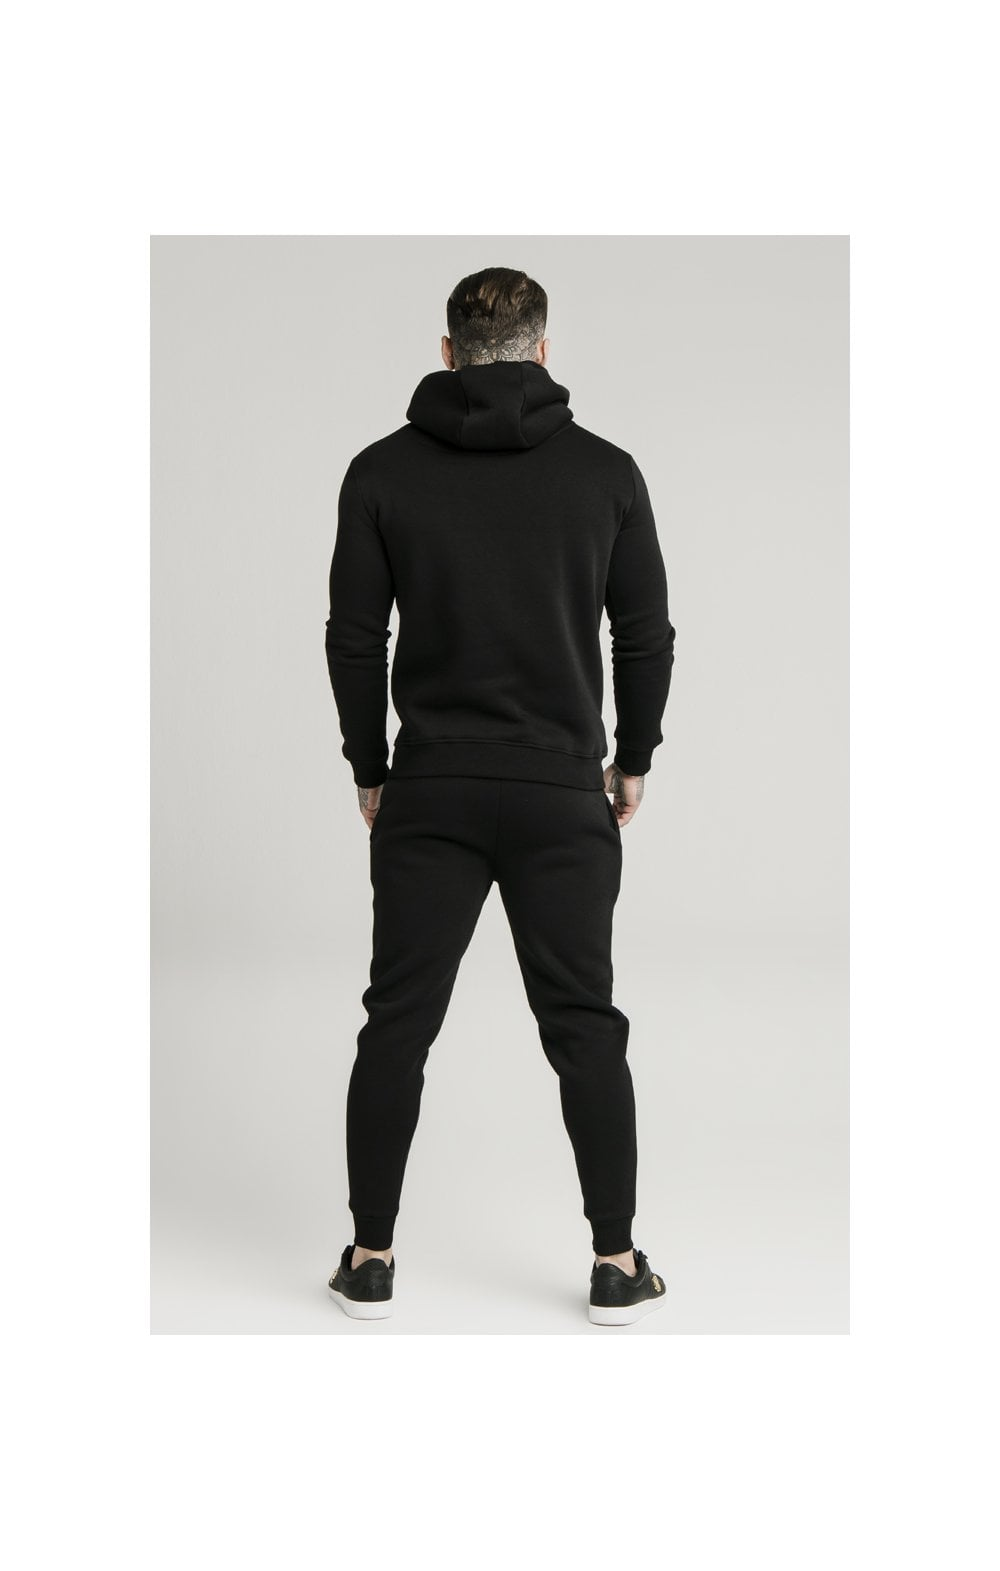 SikSilk Muscle Fit Overhead Hoodie - Black (4)